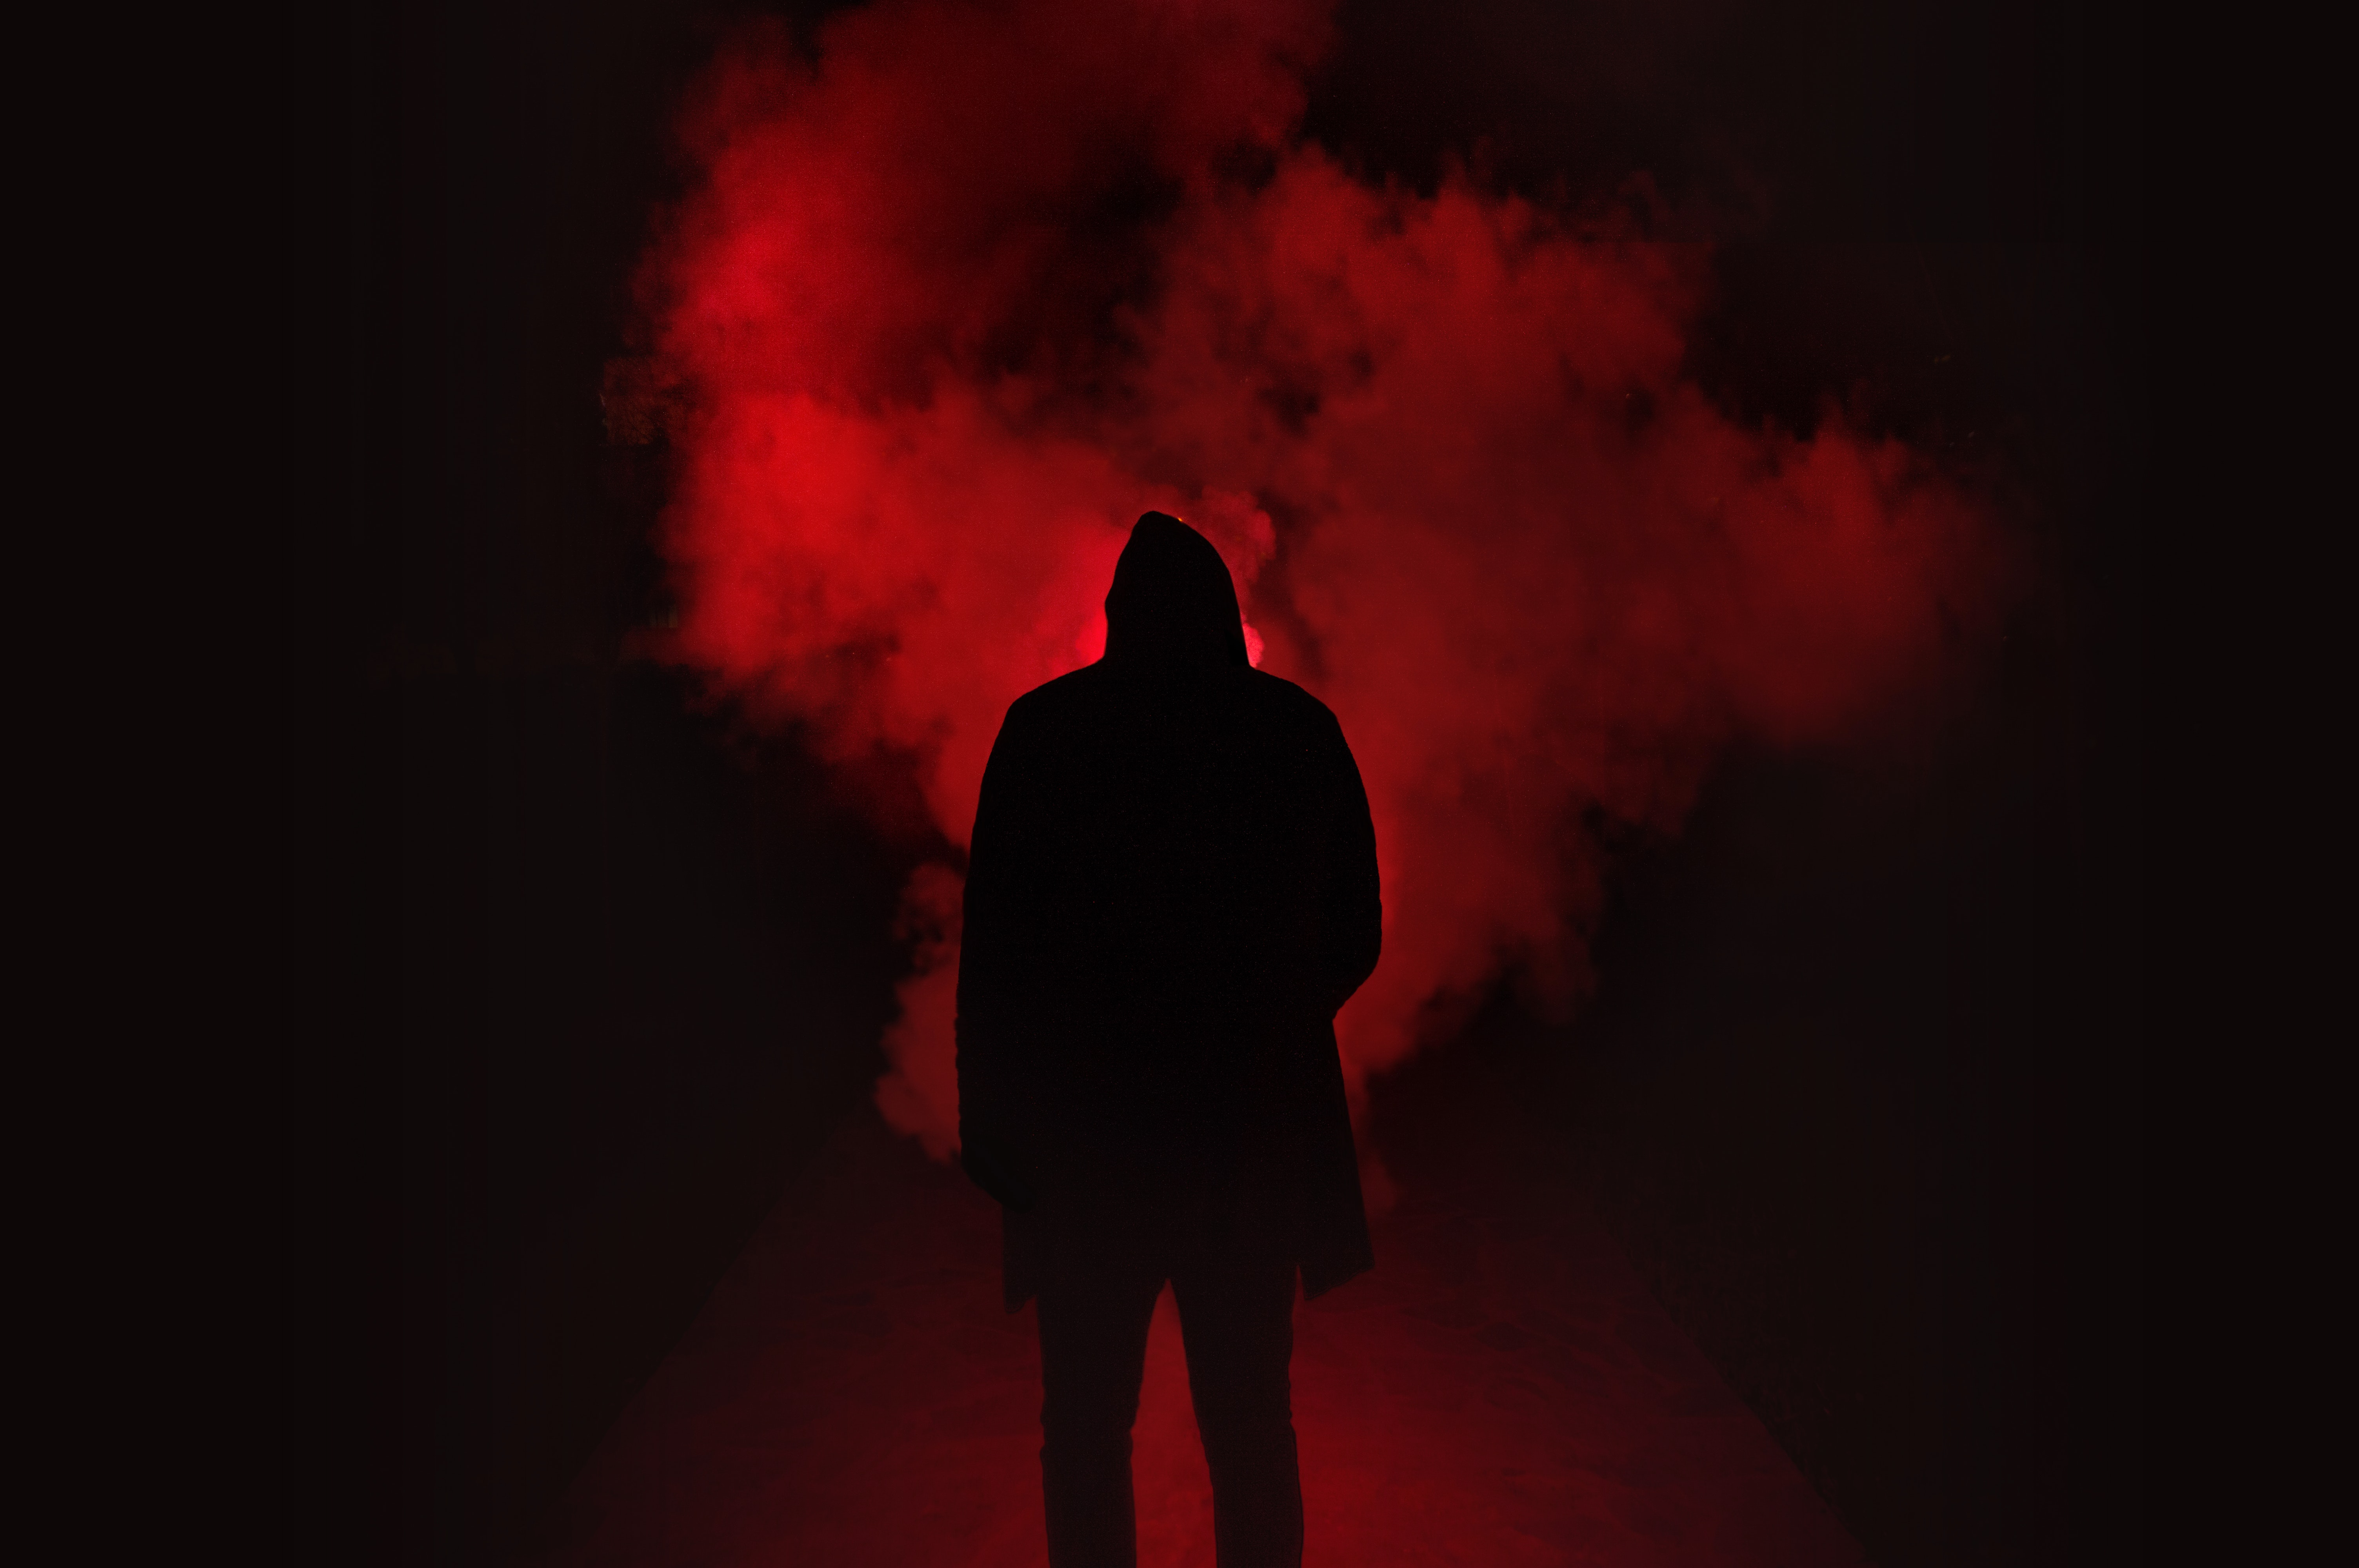 Silhouette of man standing against black and red background photo